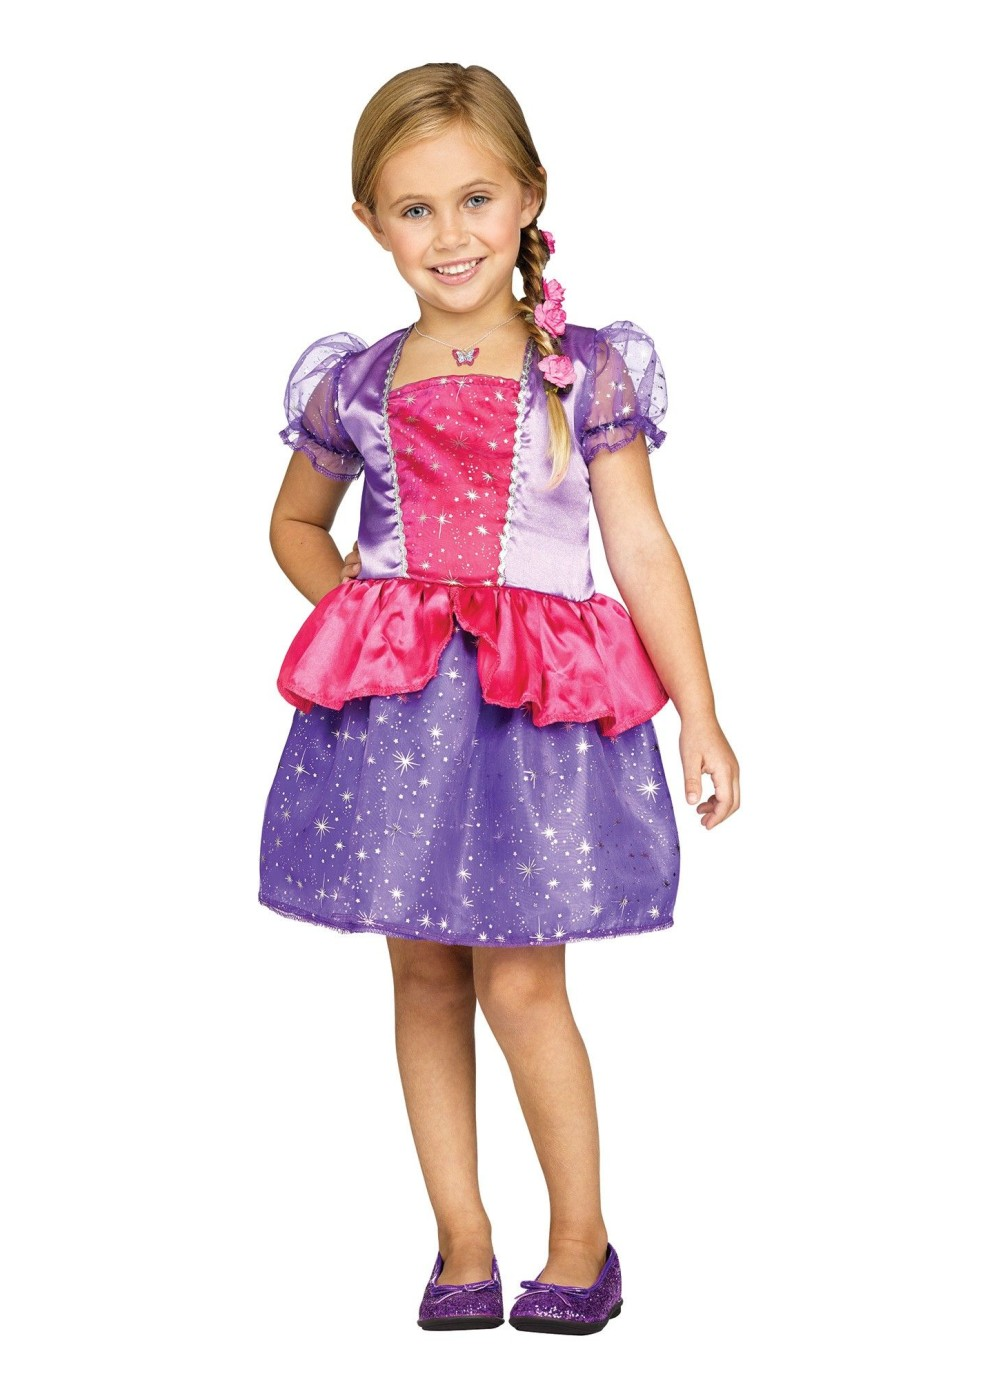 See our Princess costumes for toddler girls, and get ready for fun! Your little girl will look so adorable dressed up for imaginative playtime. You'll love our big selection of costumes for your toddler girl.